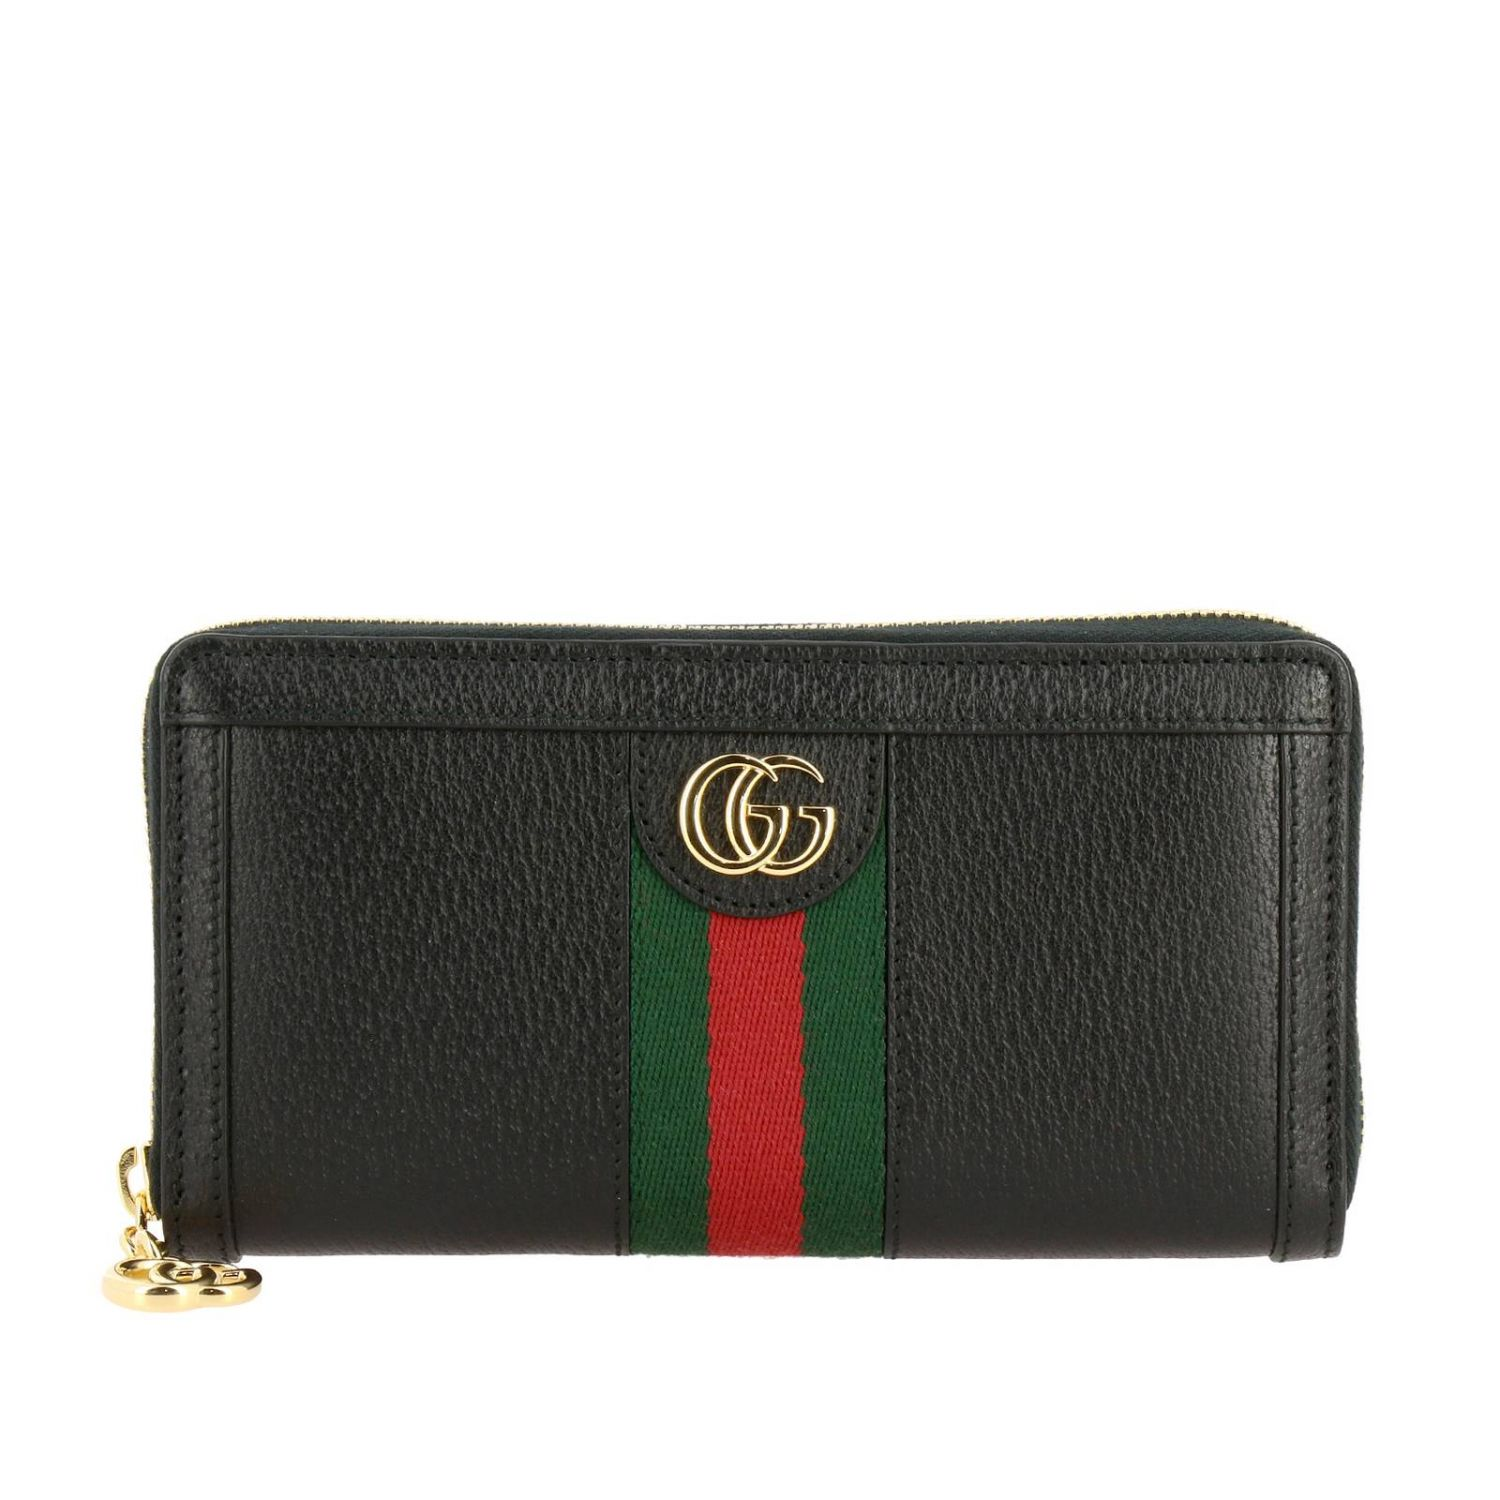 Wallet Gucci: Ophidia Gucci textured leather wallet with Web band and GG monogram black 1